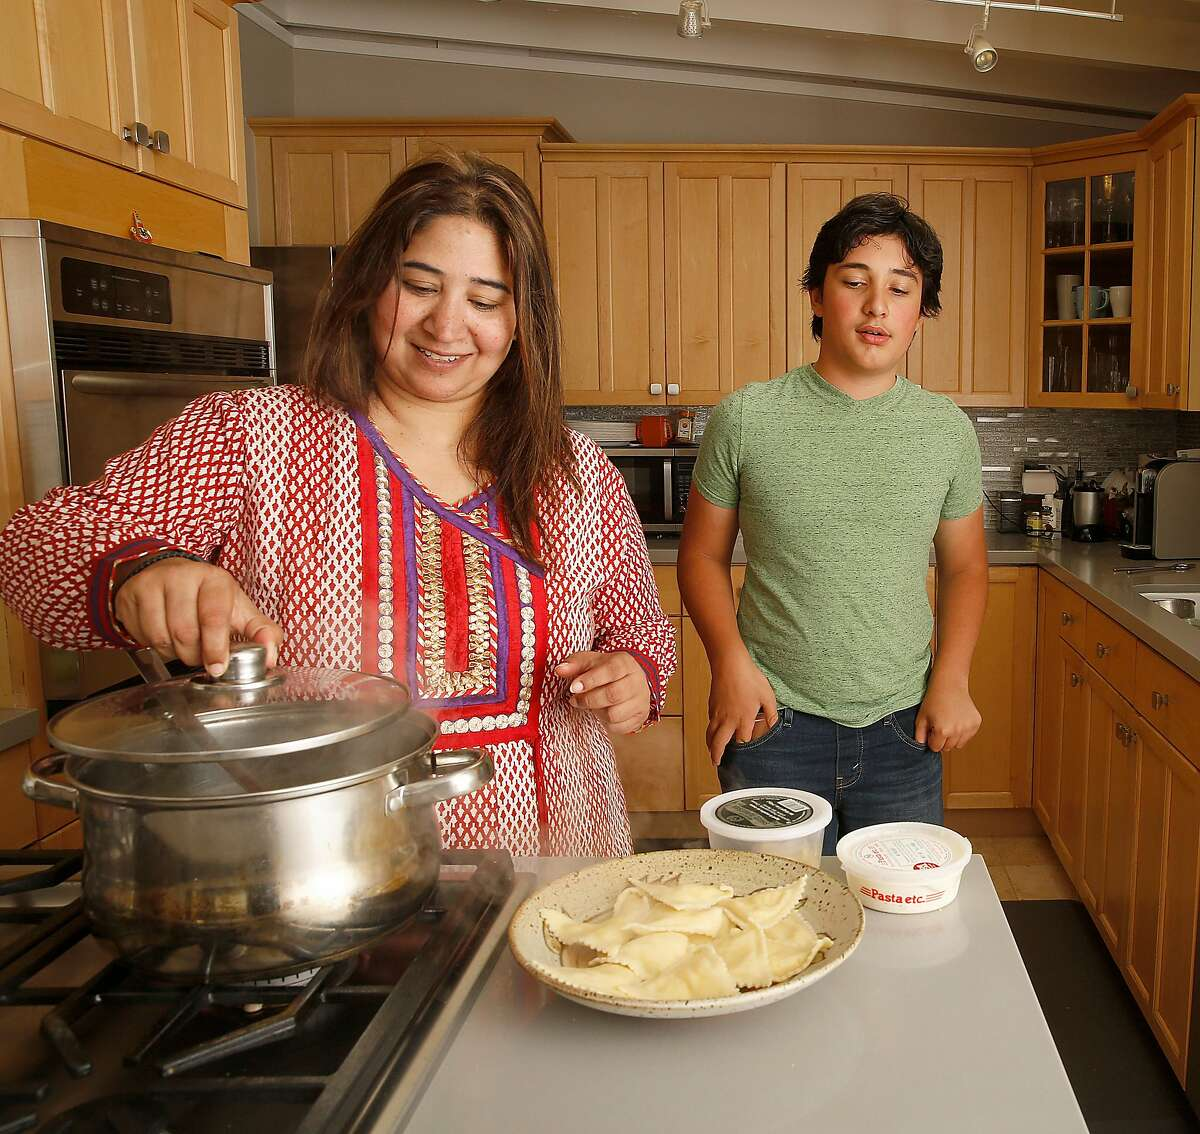 Sowmya Rangaswamy (left) makes lunch with her son Ayush Thirumala (right), 13, in their new home on Friday, August 3, 2017, in Mountain View, Calif.